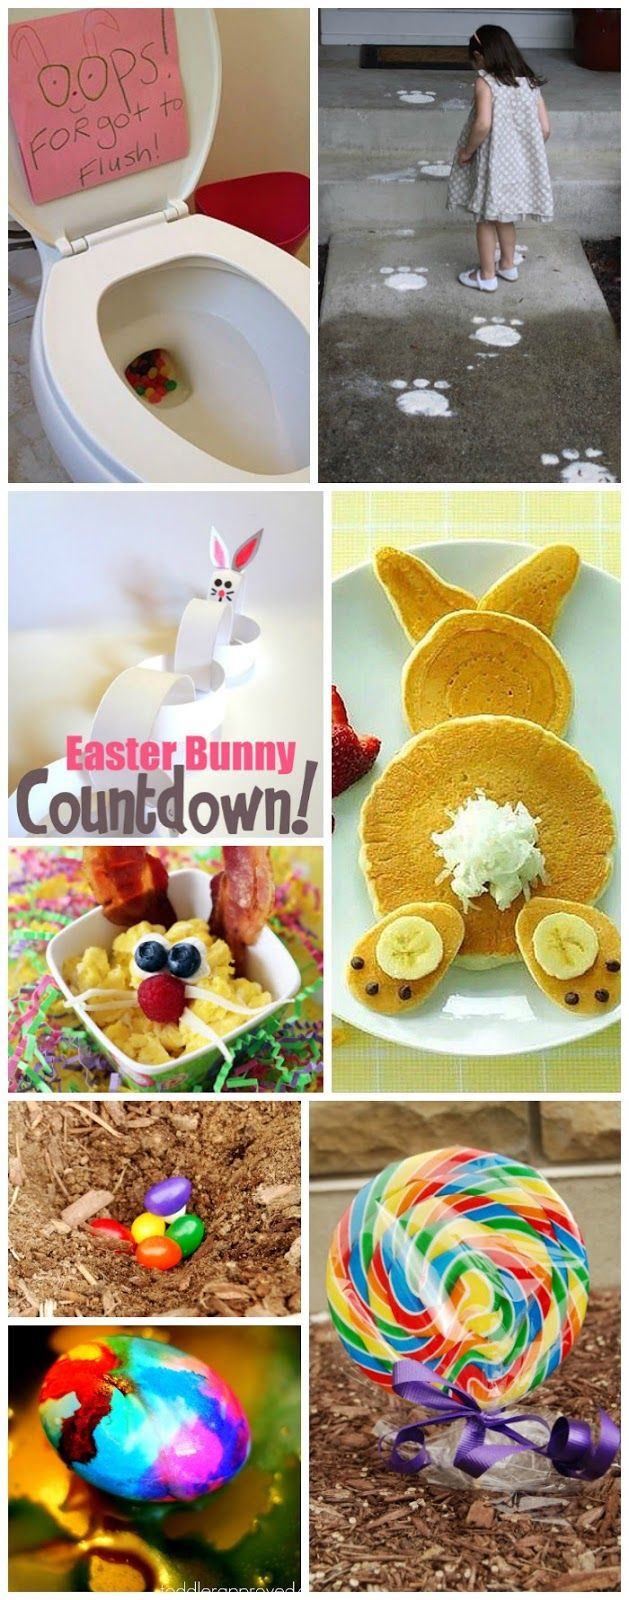 670 best kids images on pinterest day care crafts for kids and my easter traditions for kids negle Image collections